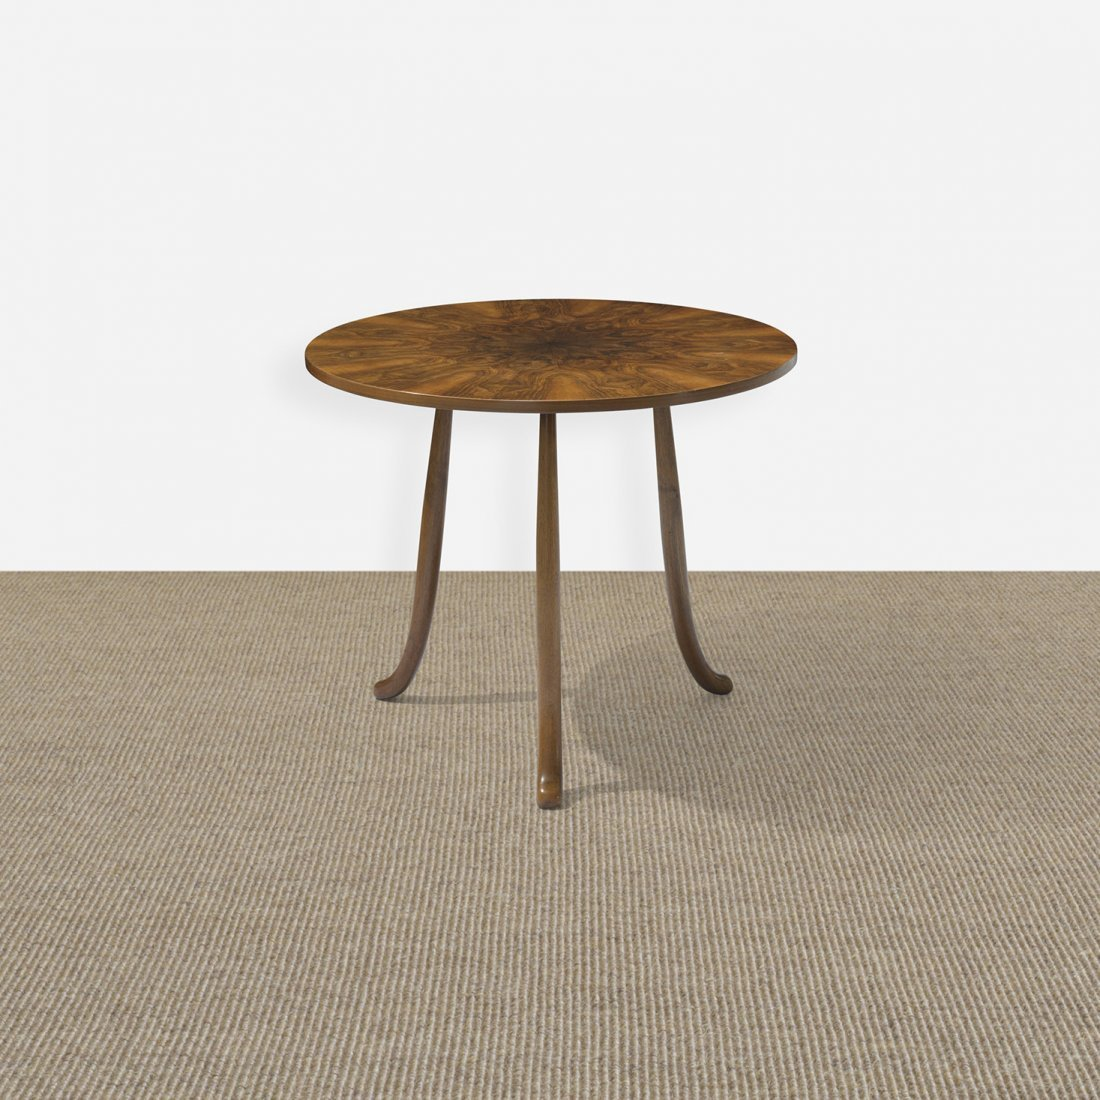 126: Josef Frank occasional table